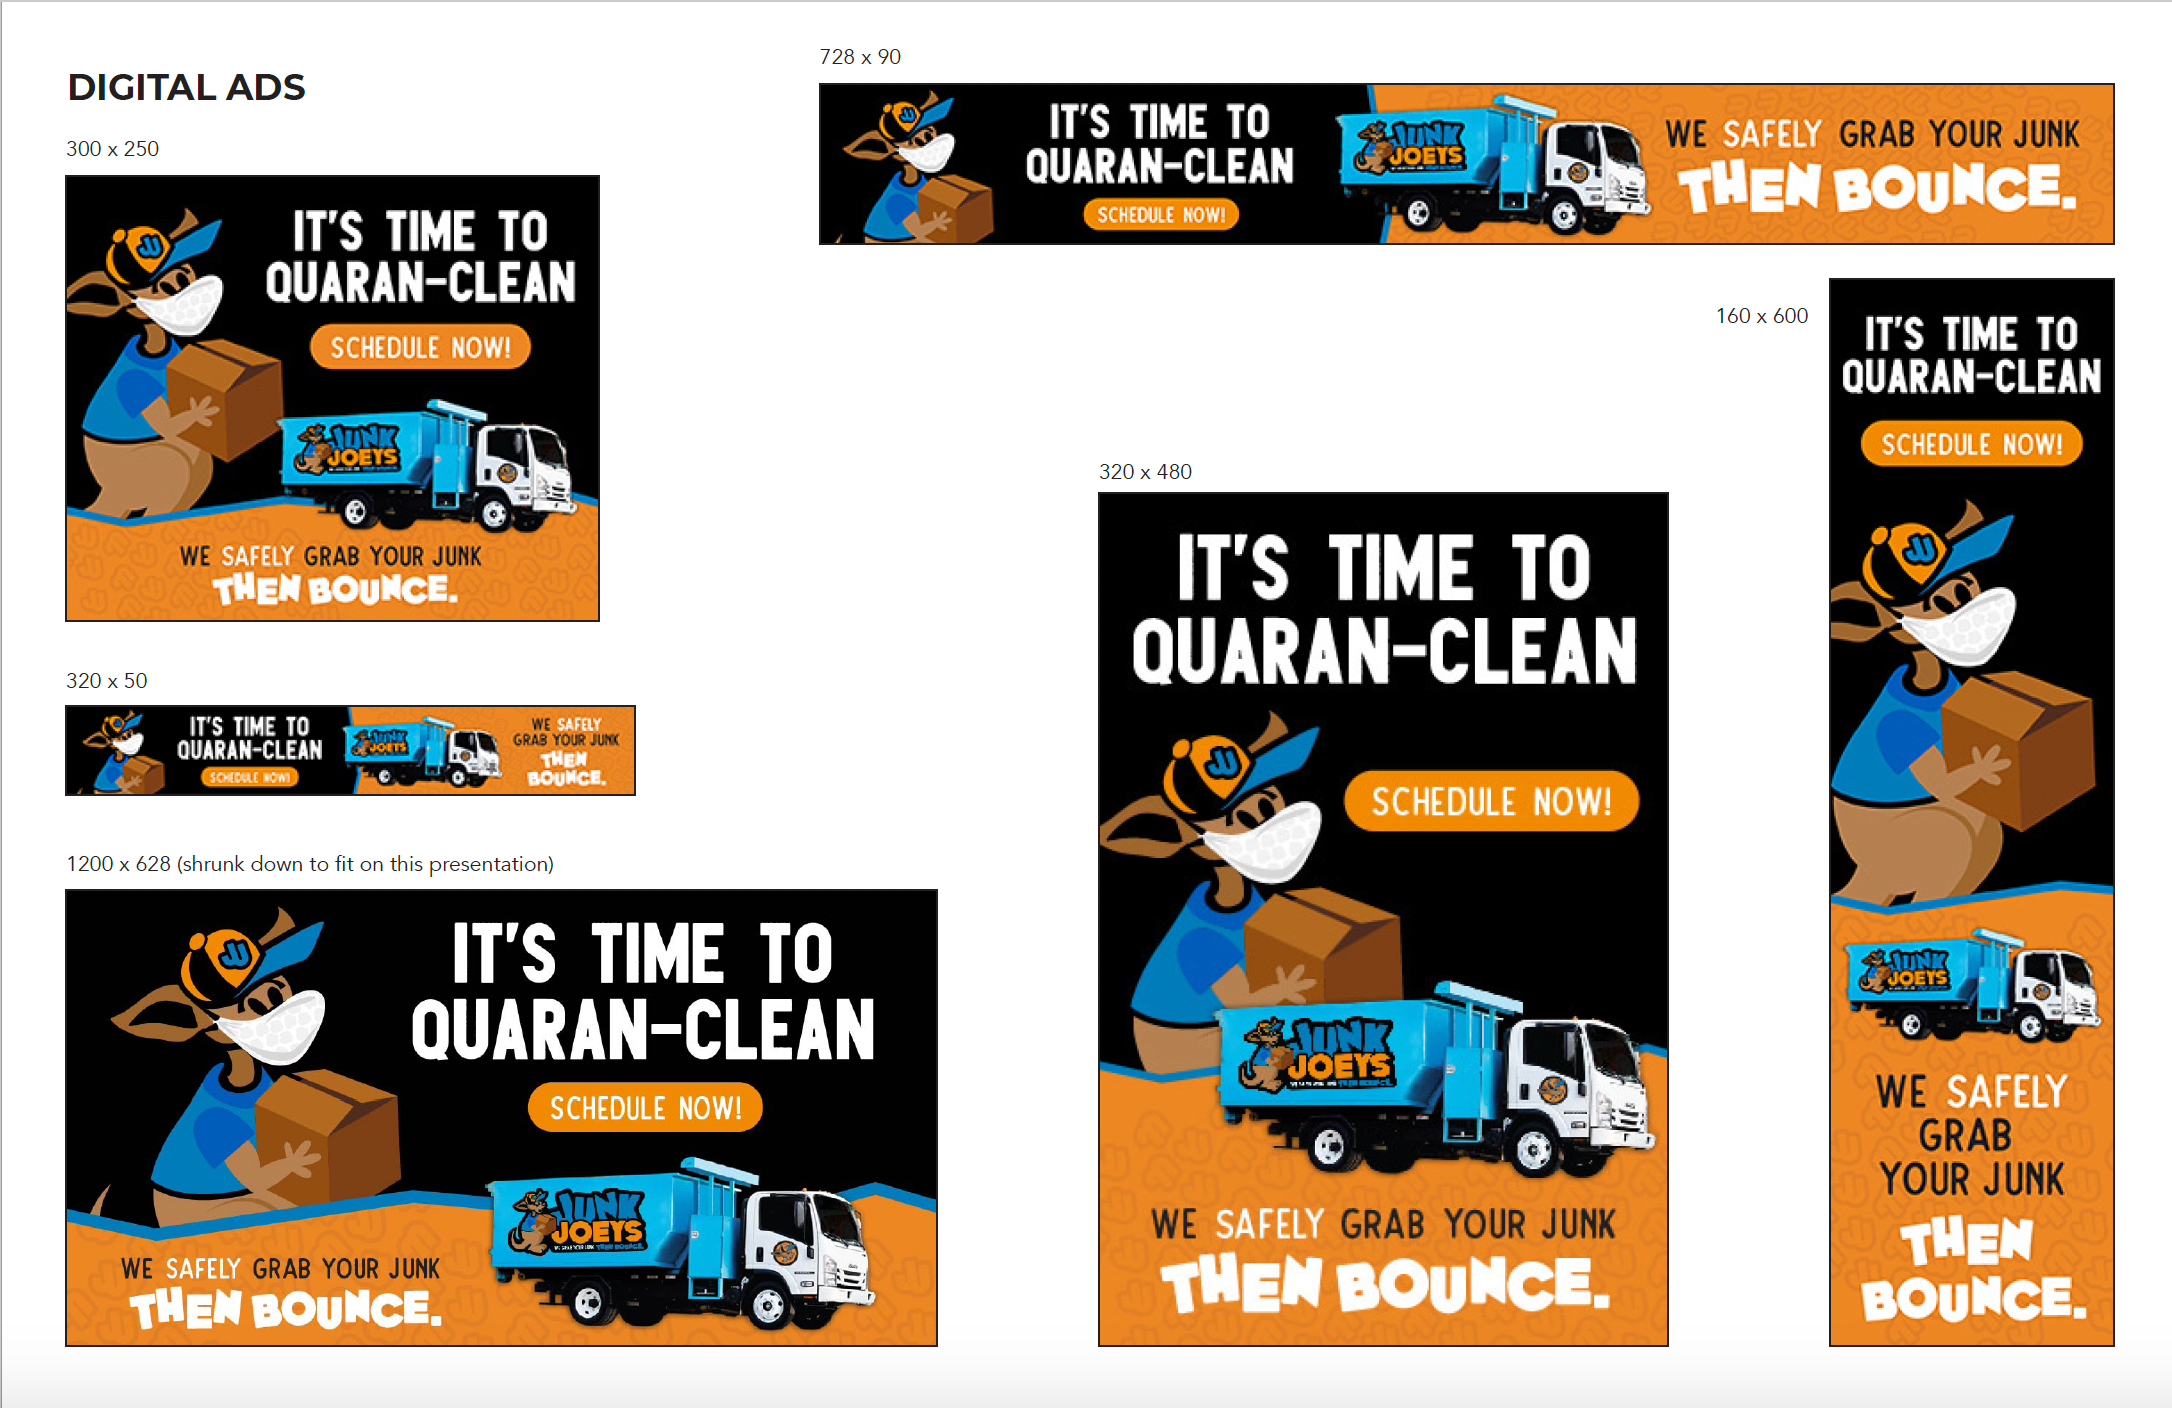 Junk Joeys Quaranclean Digital Ad Campaign